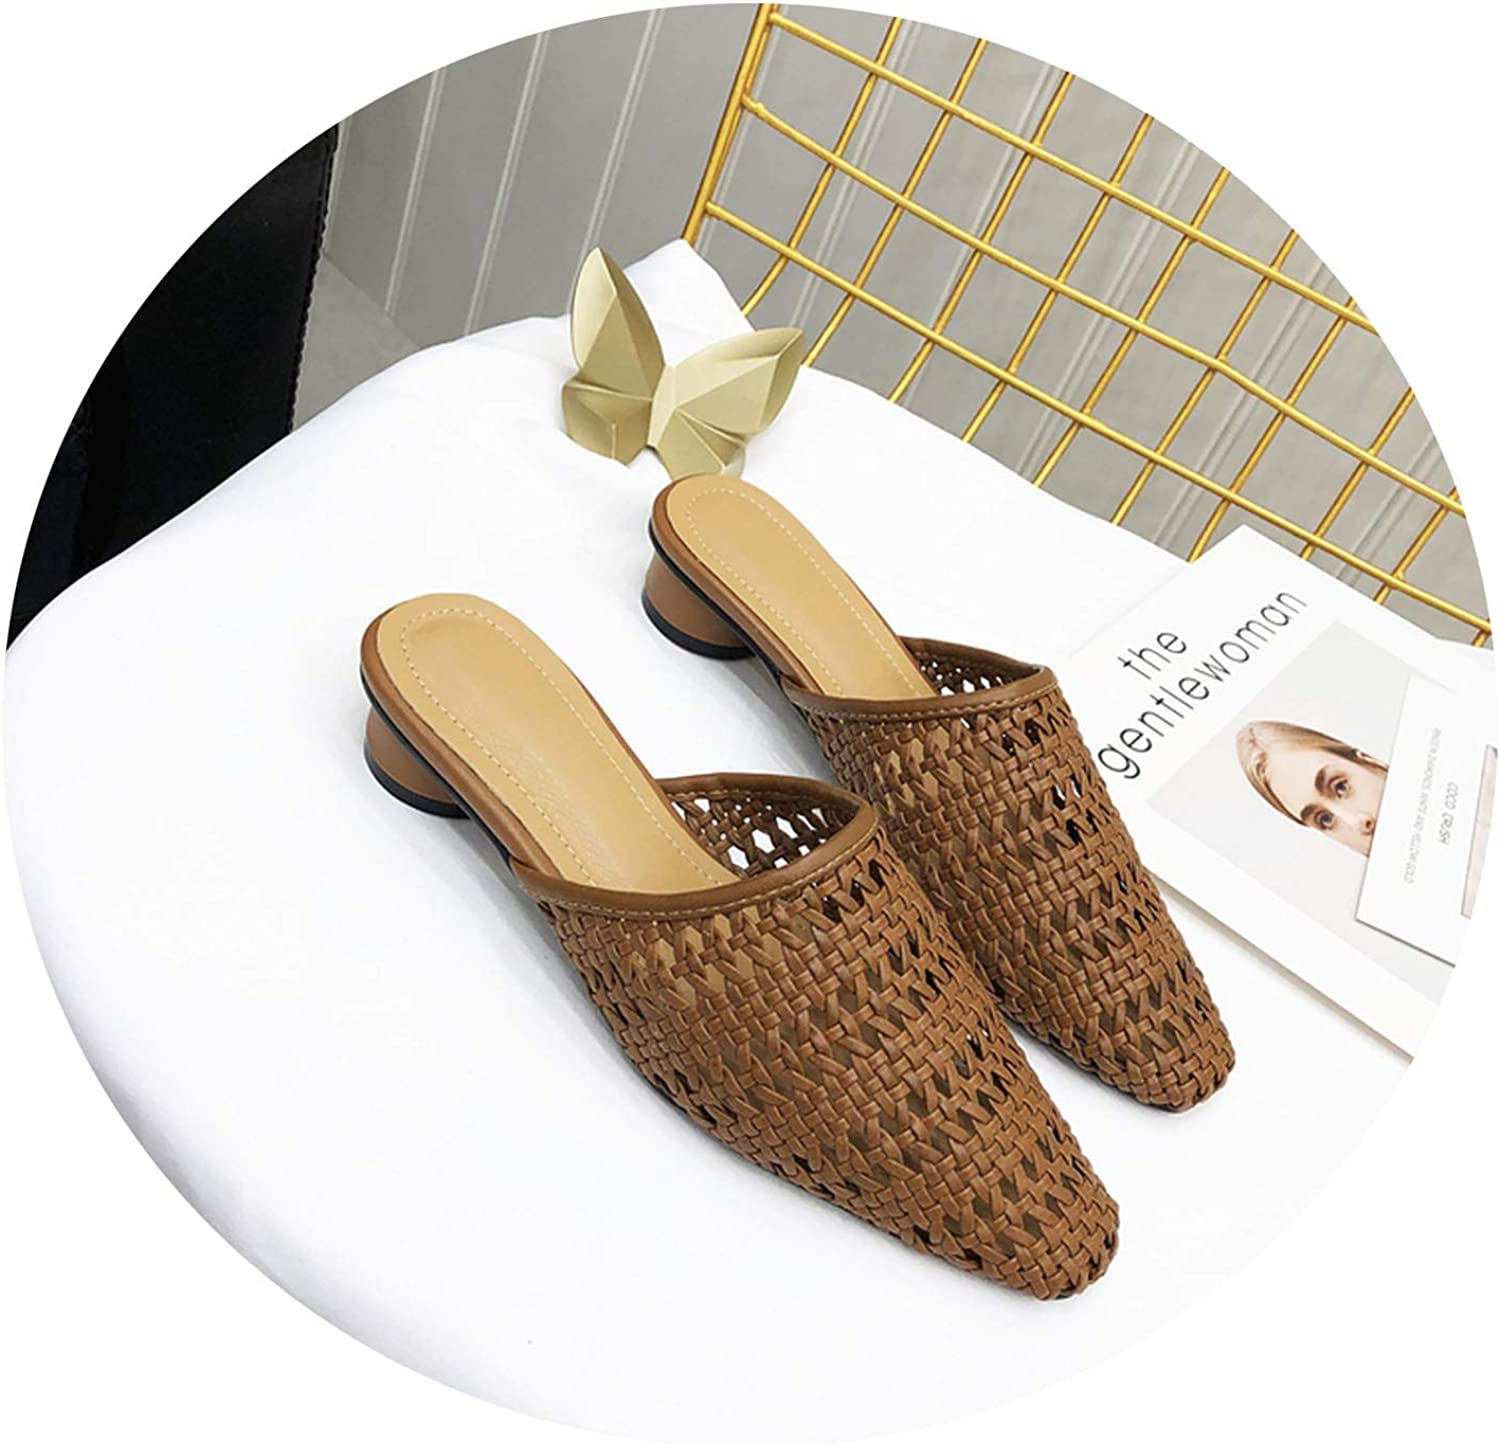 Formerly Slow Heel Mules shoes Women Cane Weaving Slippers Female Slides Ladies Slippers Women Slides